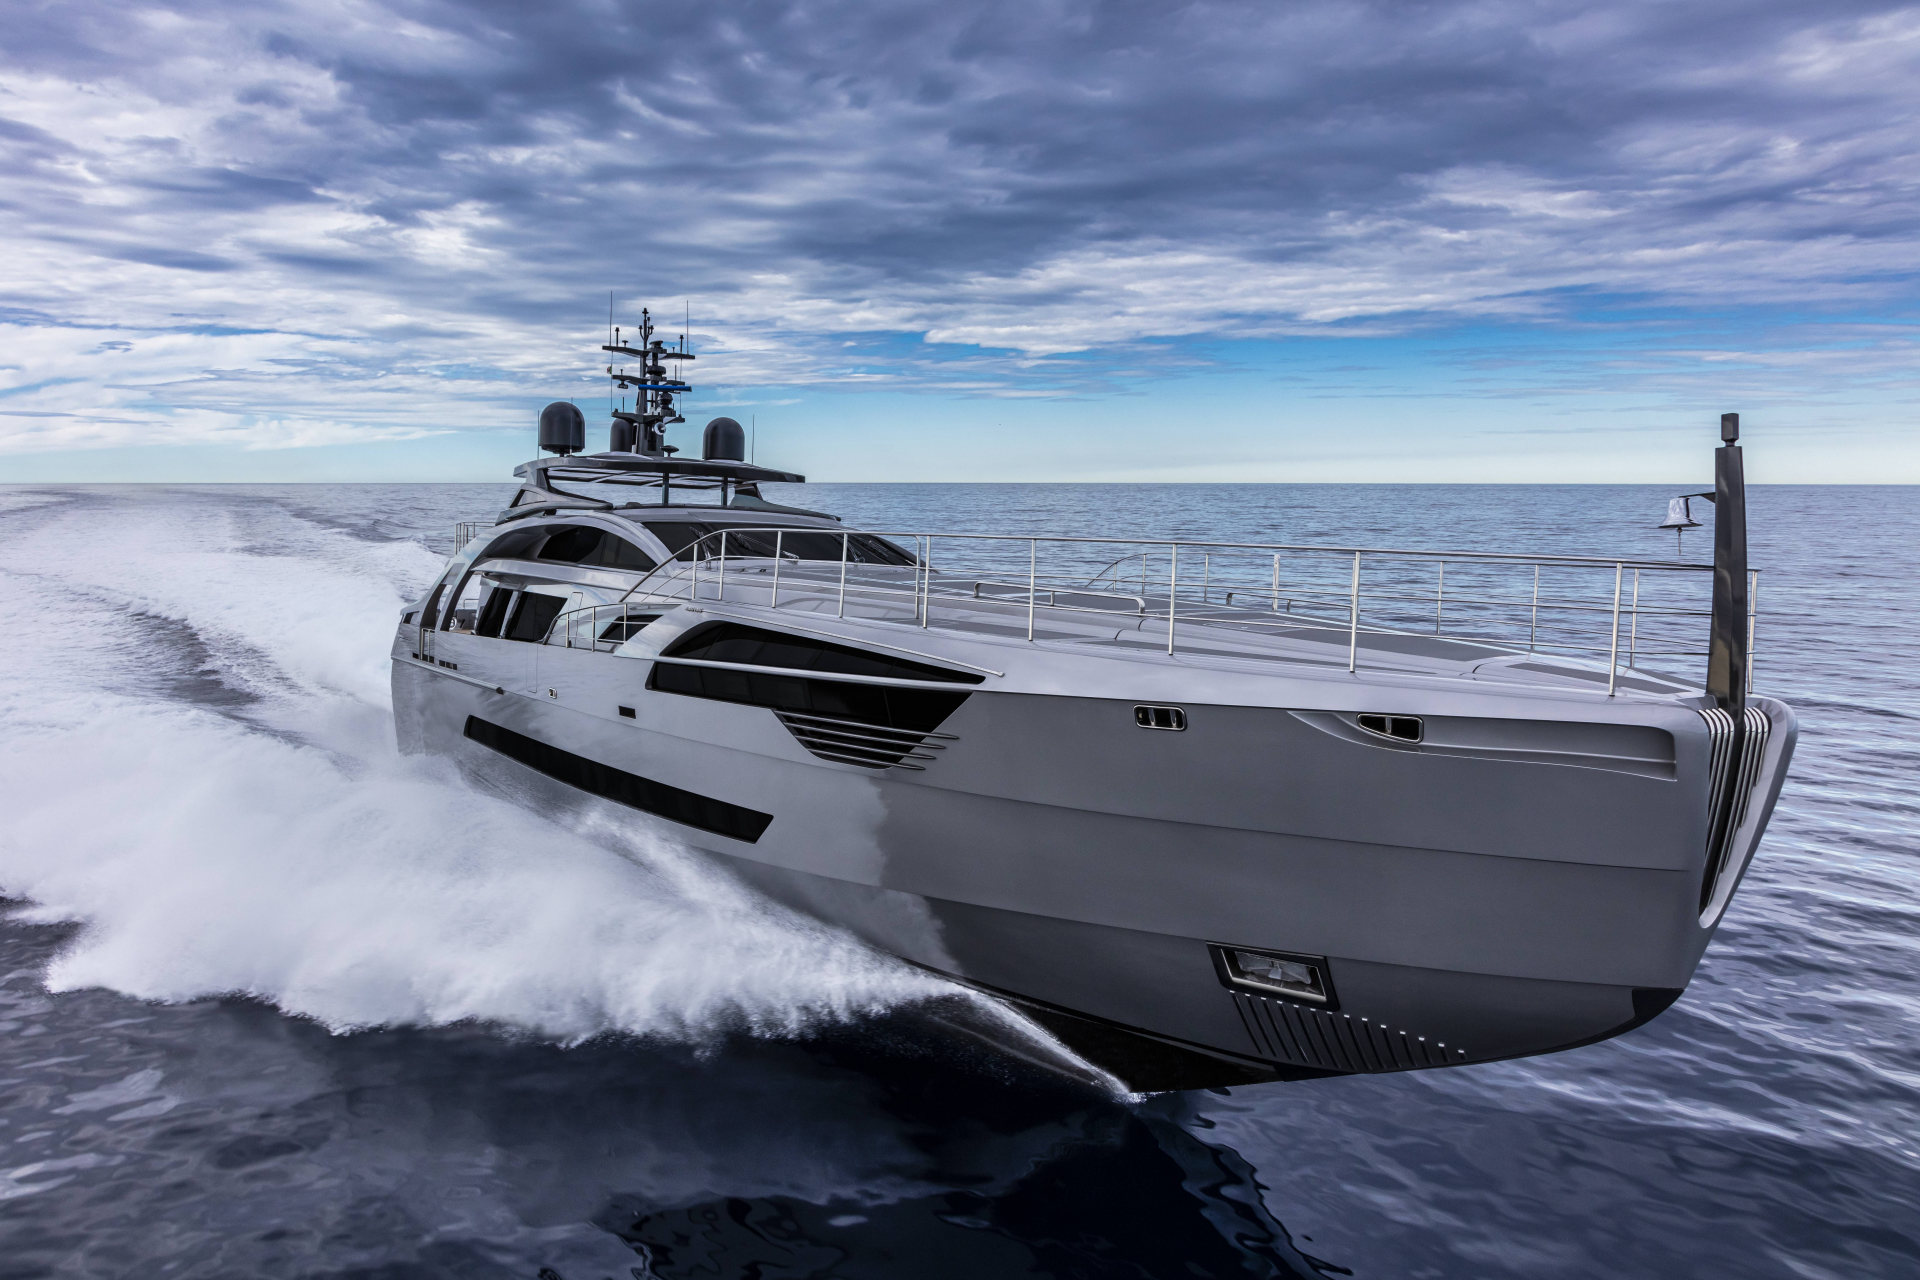 360 VR Virtual Tours of the Pershing 140 – VRCLOUD